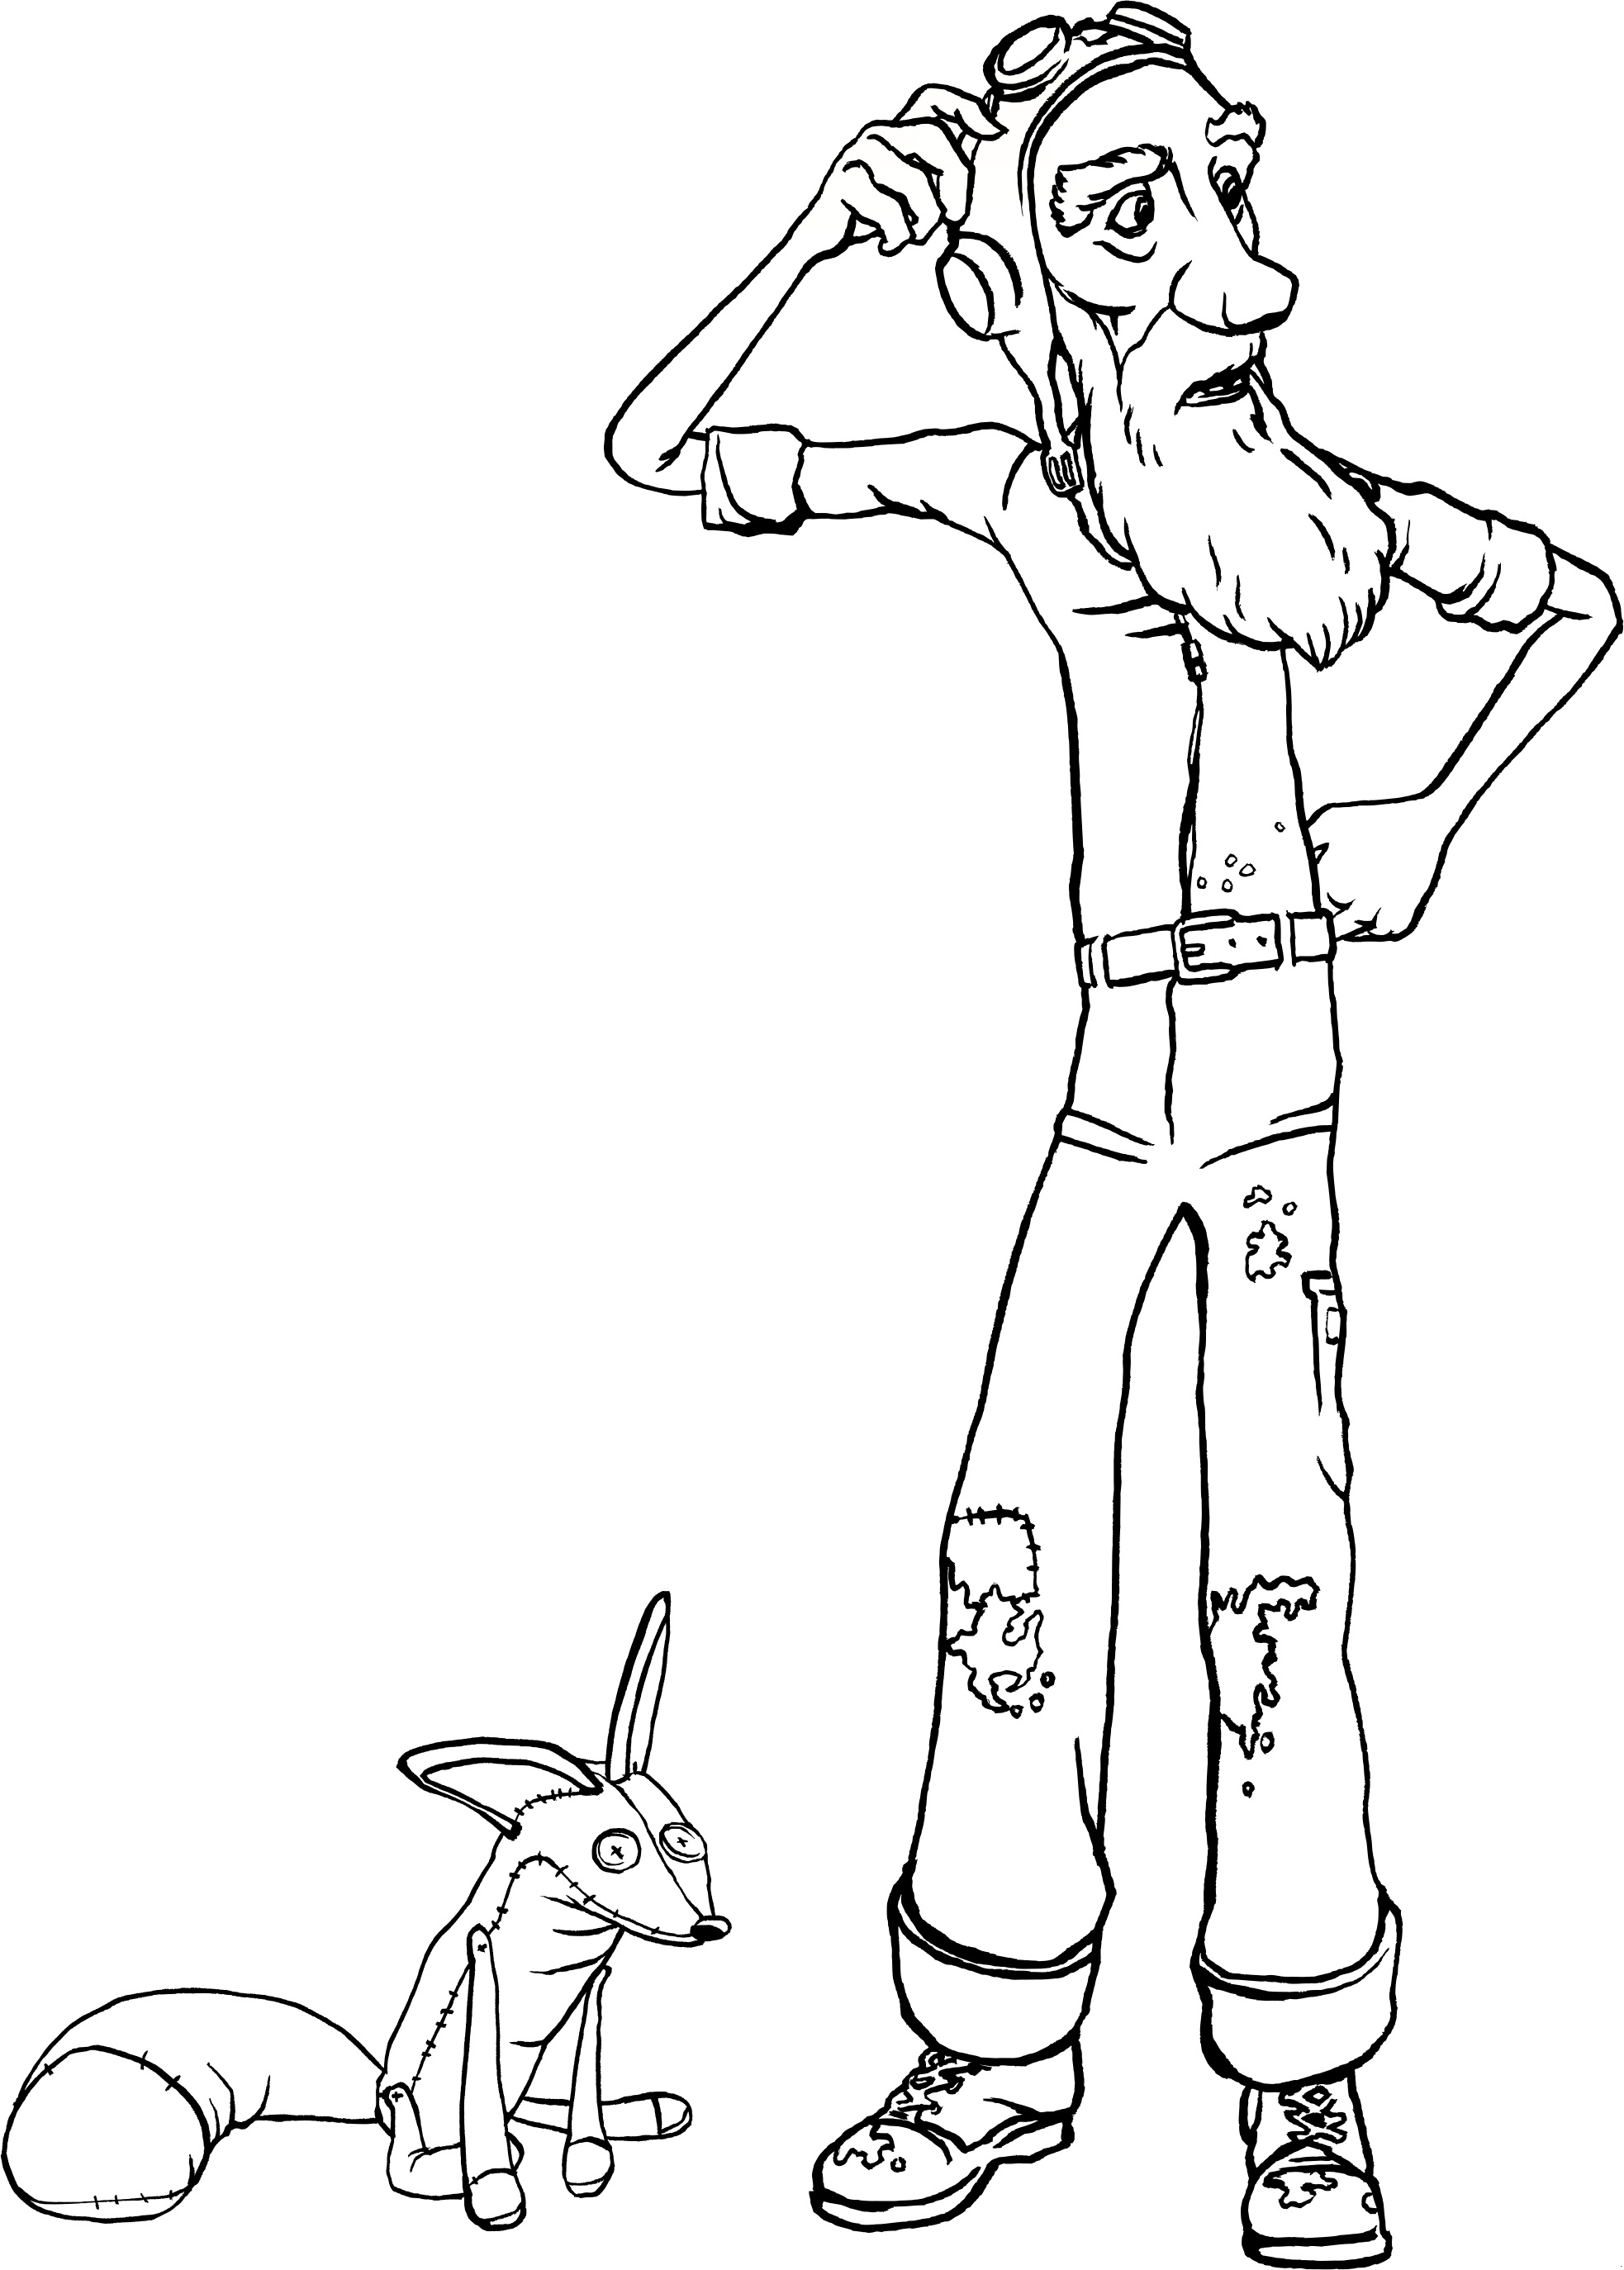 Le petit prince coloring pages to download and print for free - Coloriage petit renard ...